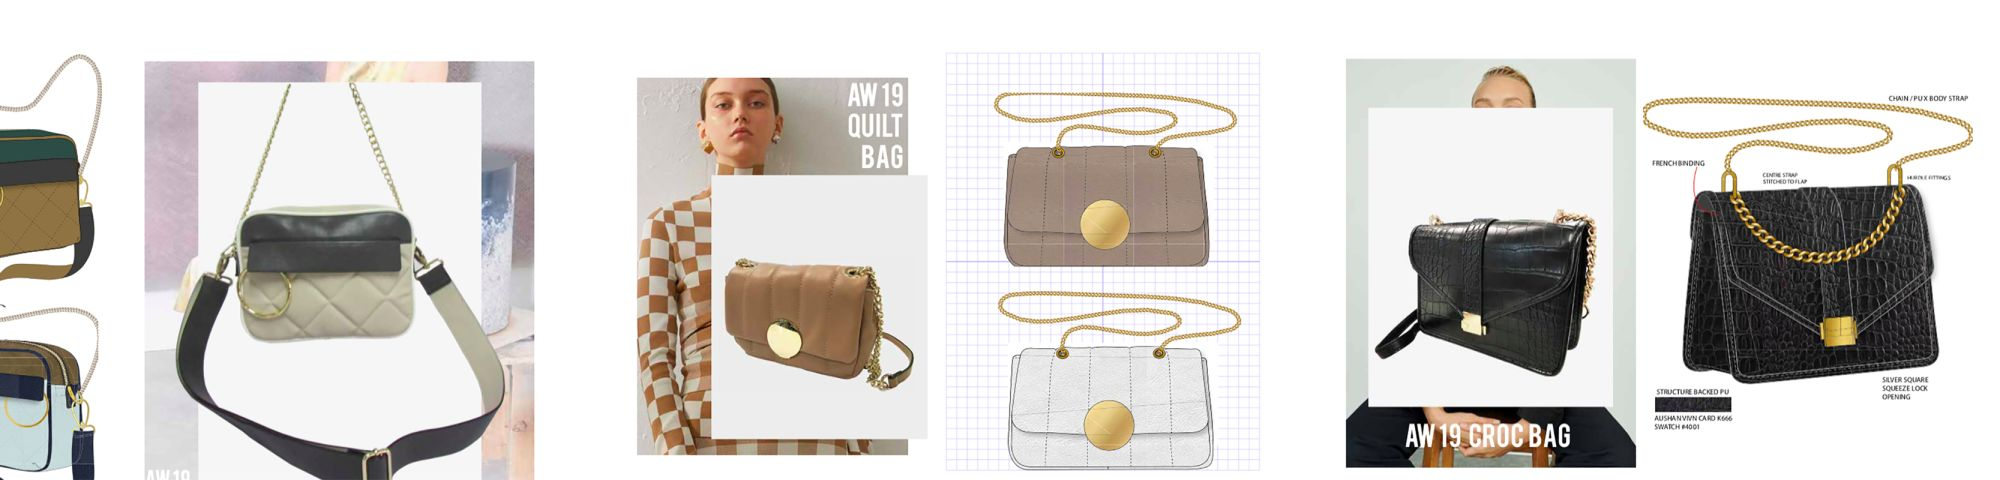 Collage of handbag design prototypes